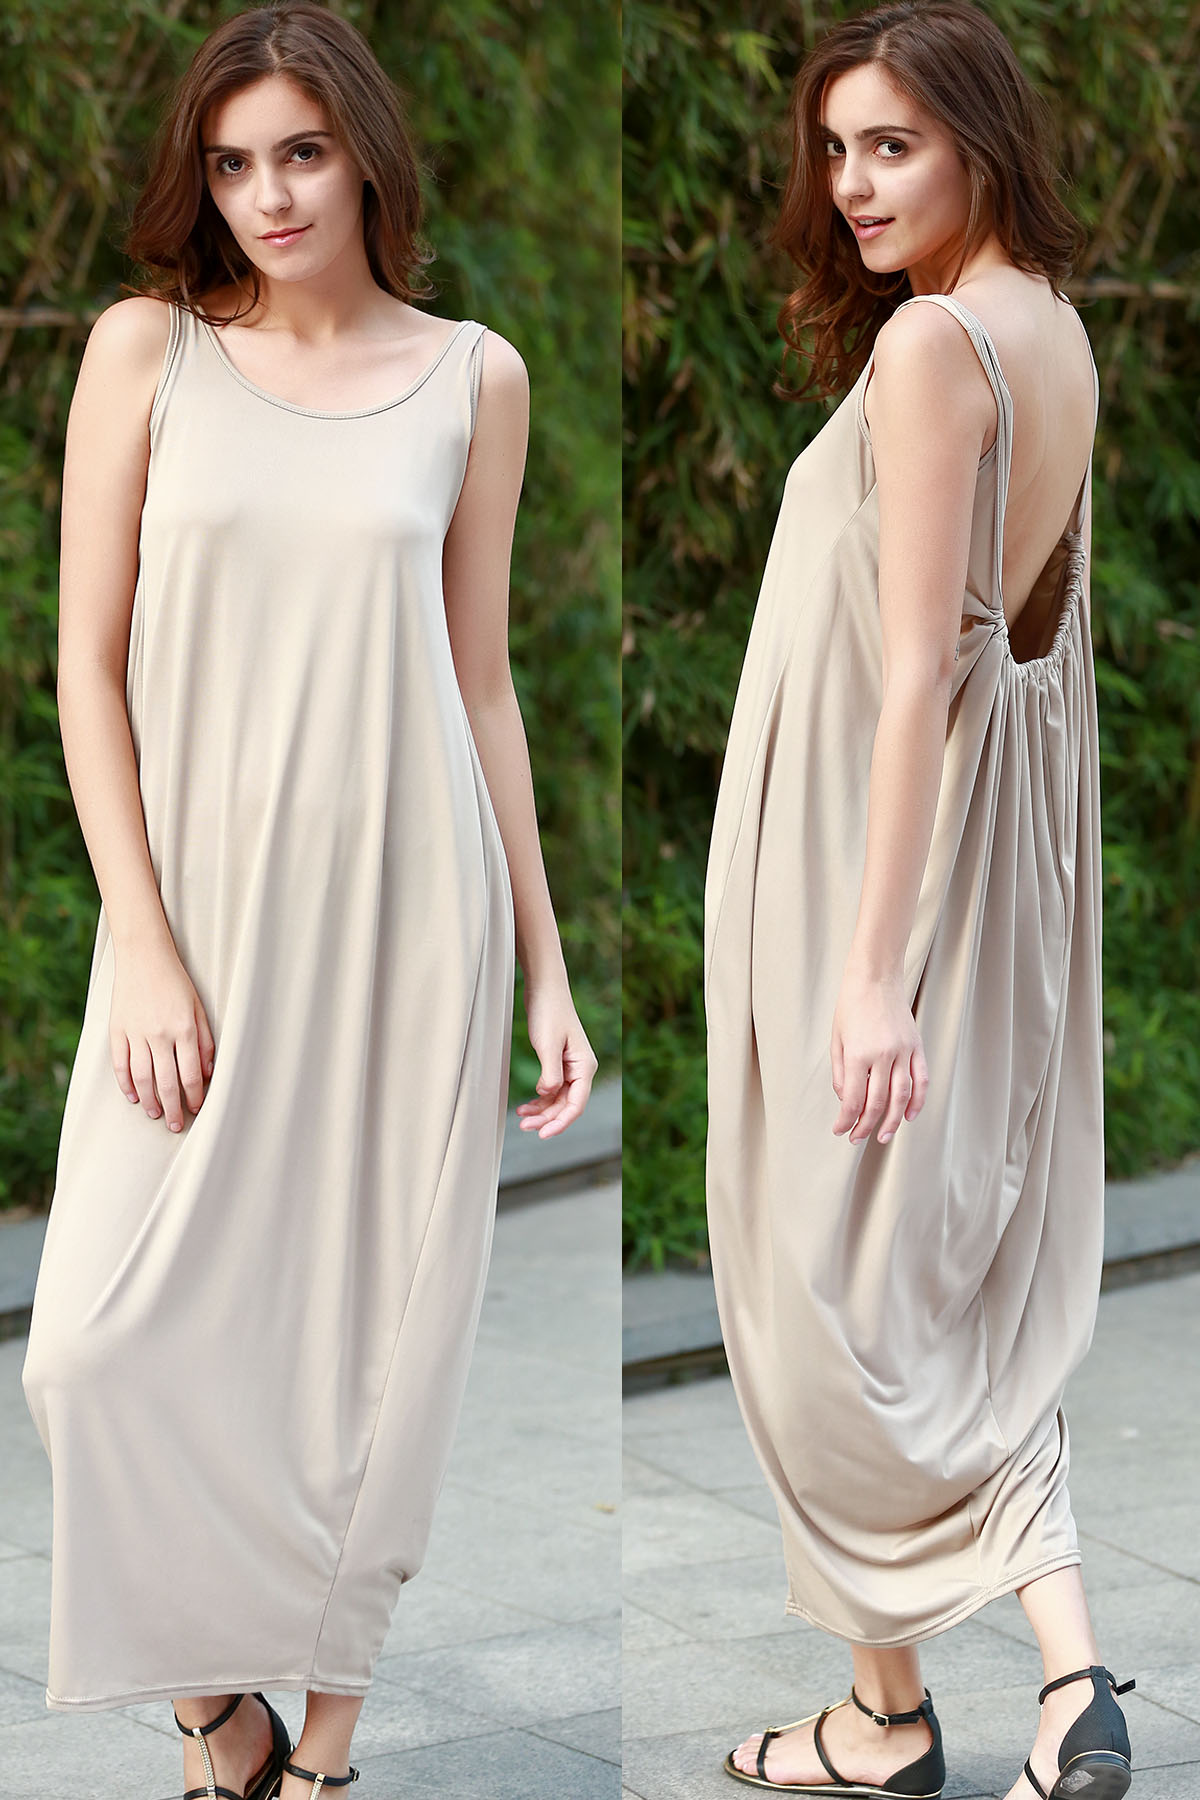 Scoop Neck Sleeveless Solid Color Backless Maxi Sundress